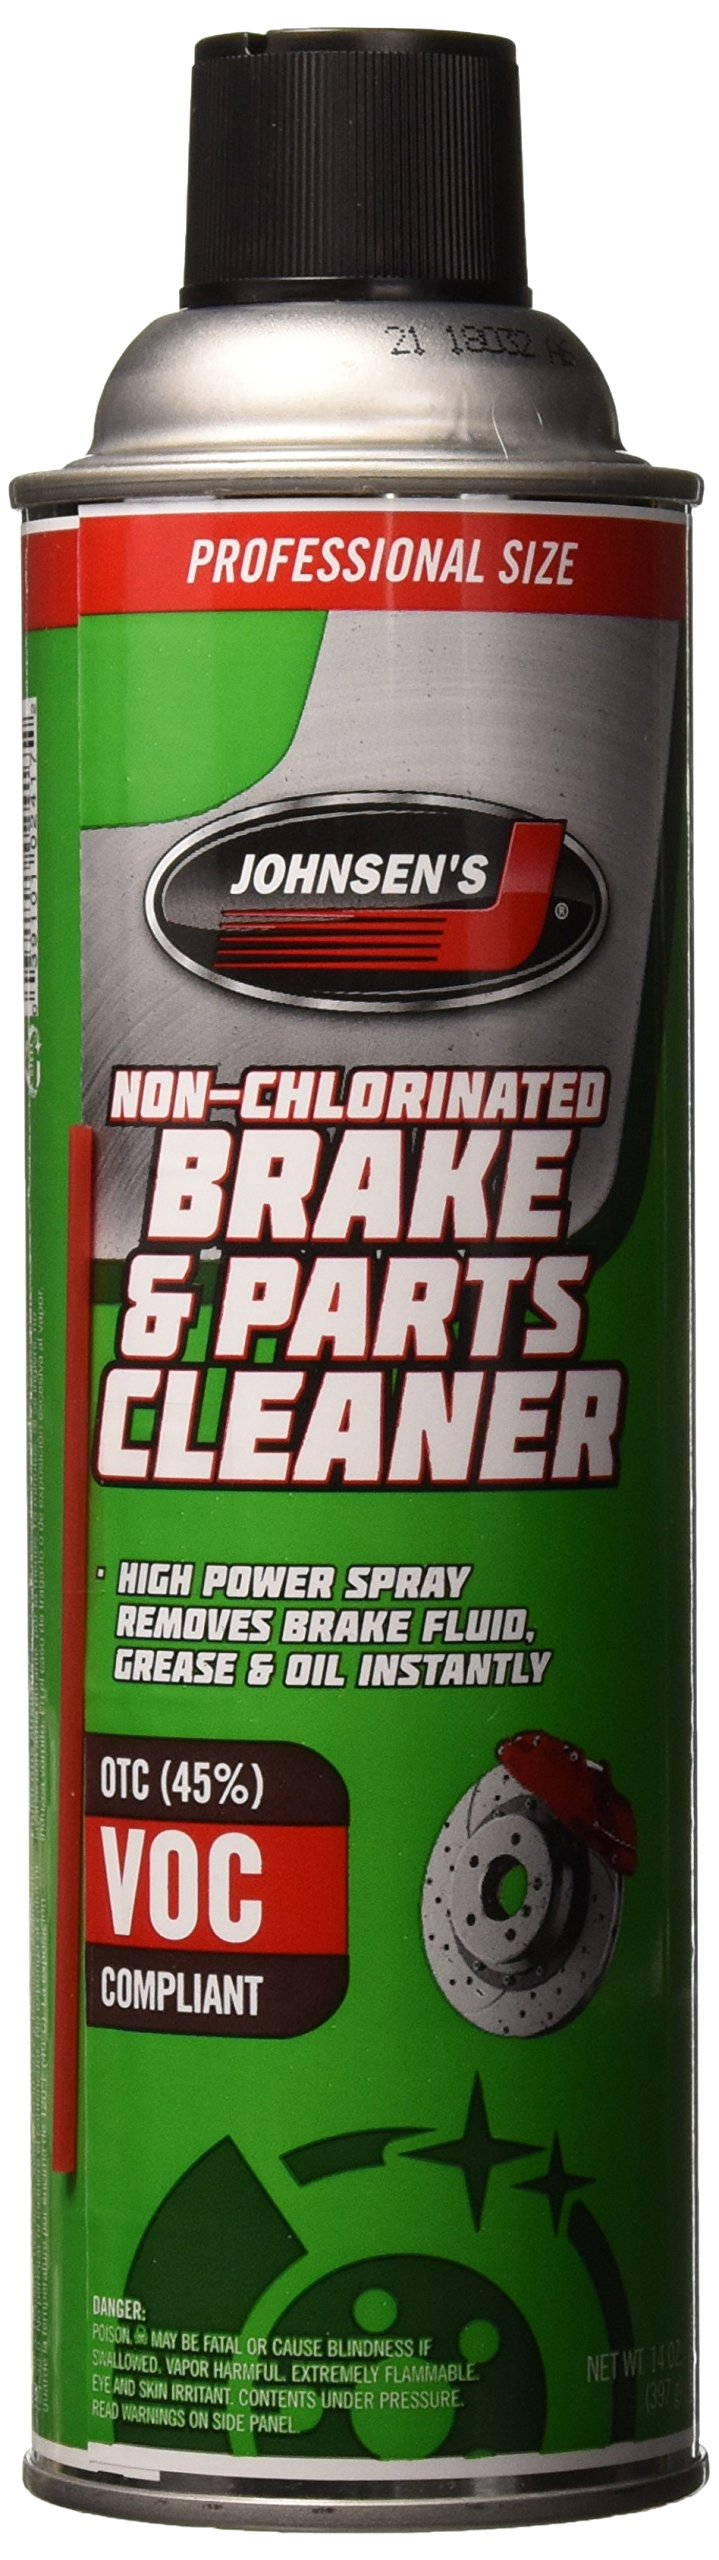 Johnsen's 2417-12PK OTC Compliant Non-Chlorinated Brake Cleaner - 14 oz,